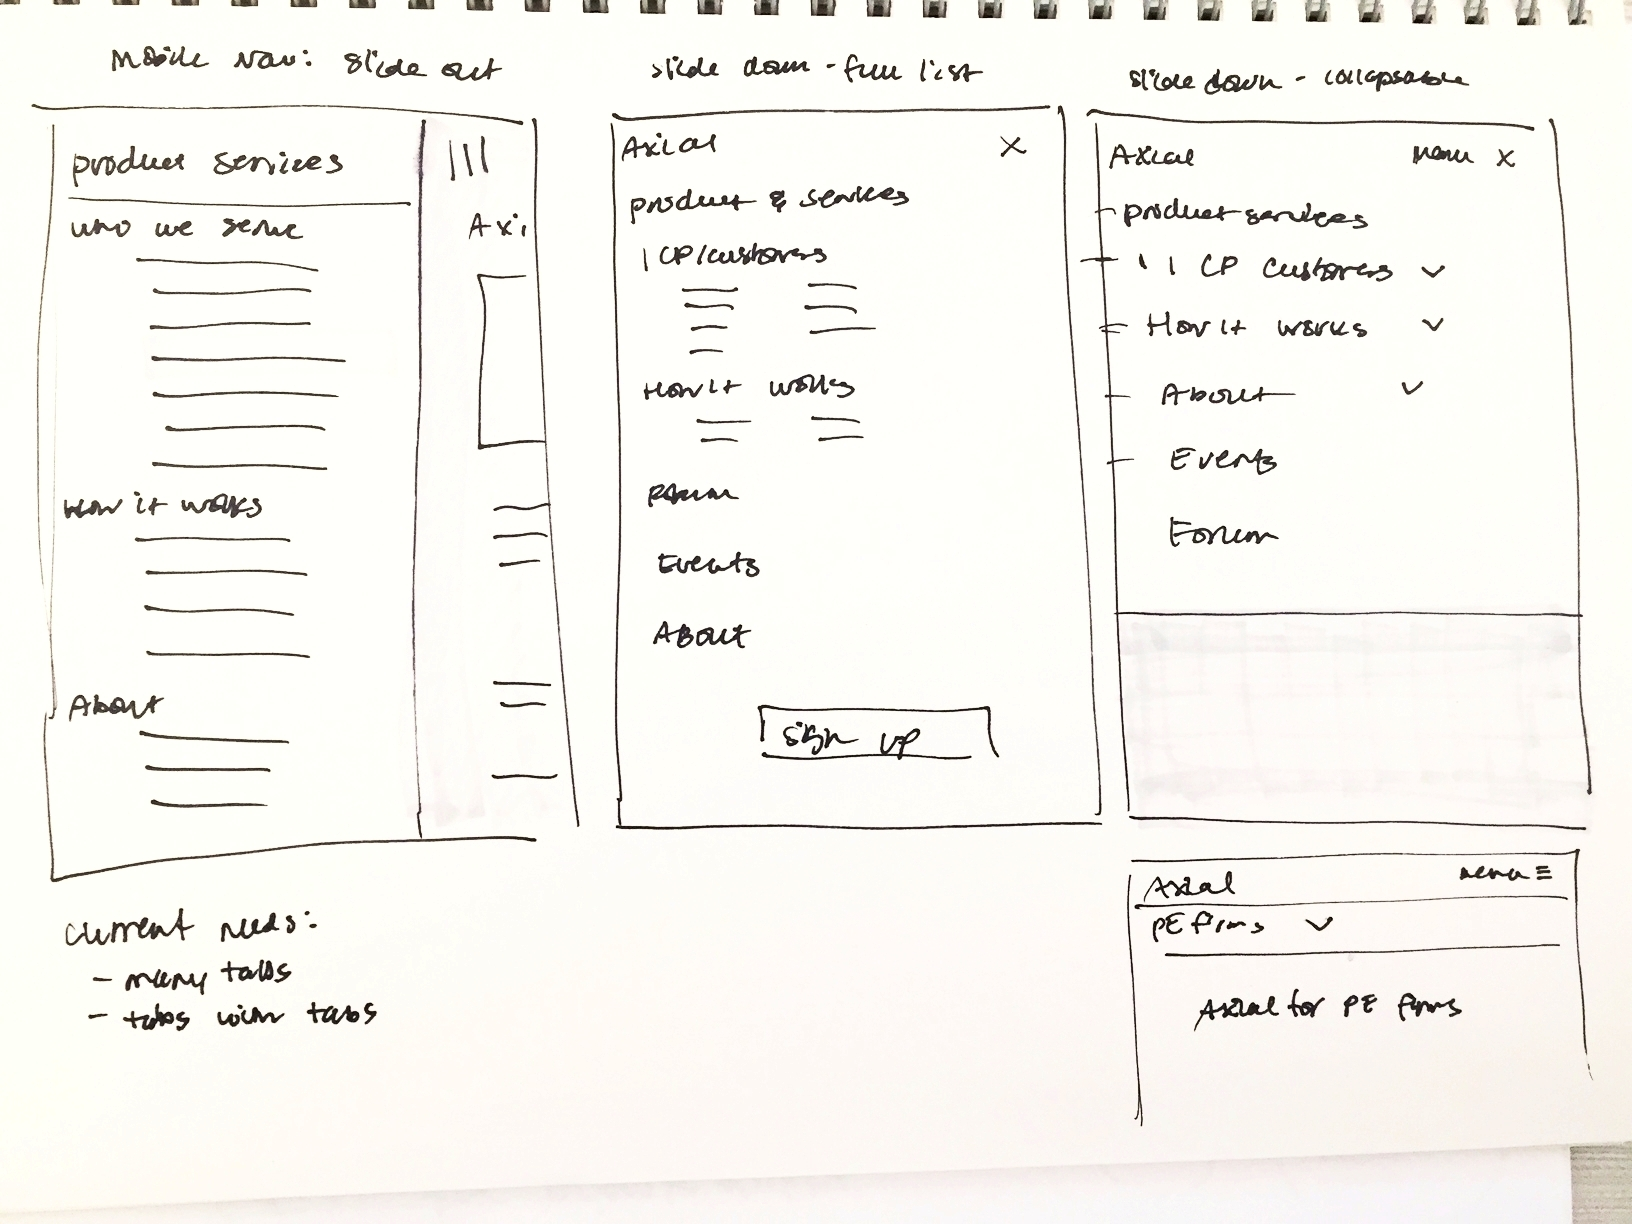 Early sketches of website wireframes for mobile